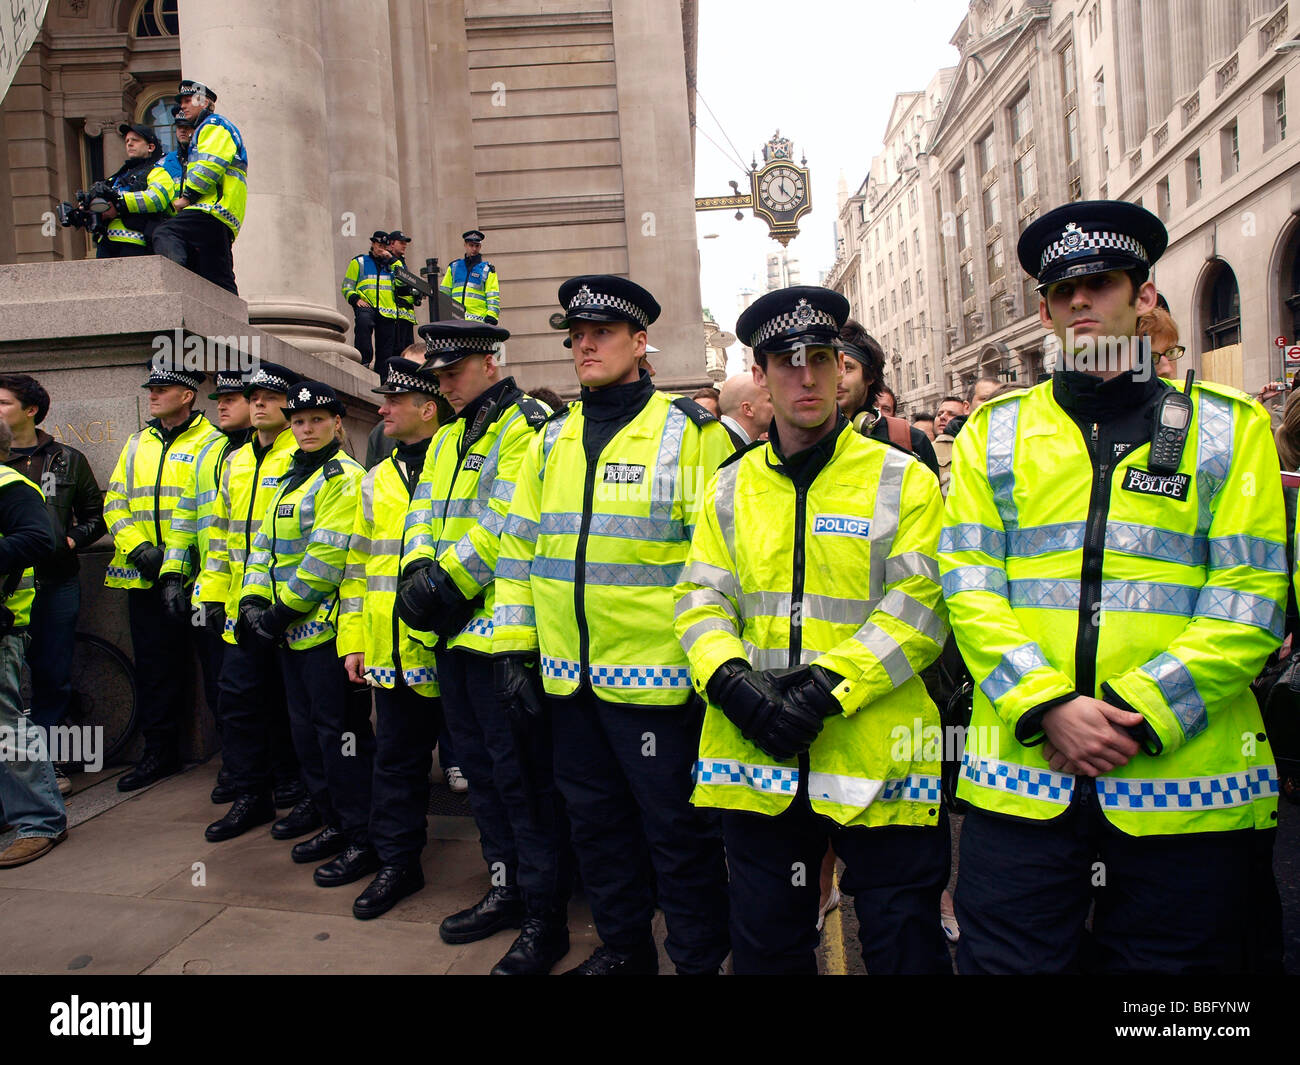 Demonstrators cordoned off by Territorial Support Group police officers in kettling action, G20 protest at the Bank - Stock Image